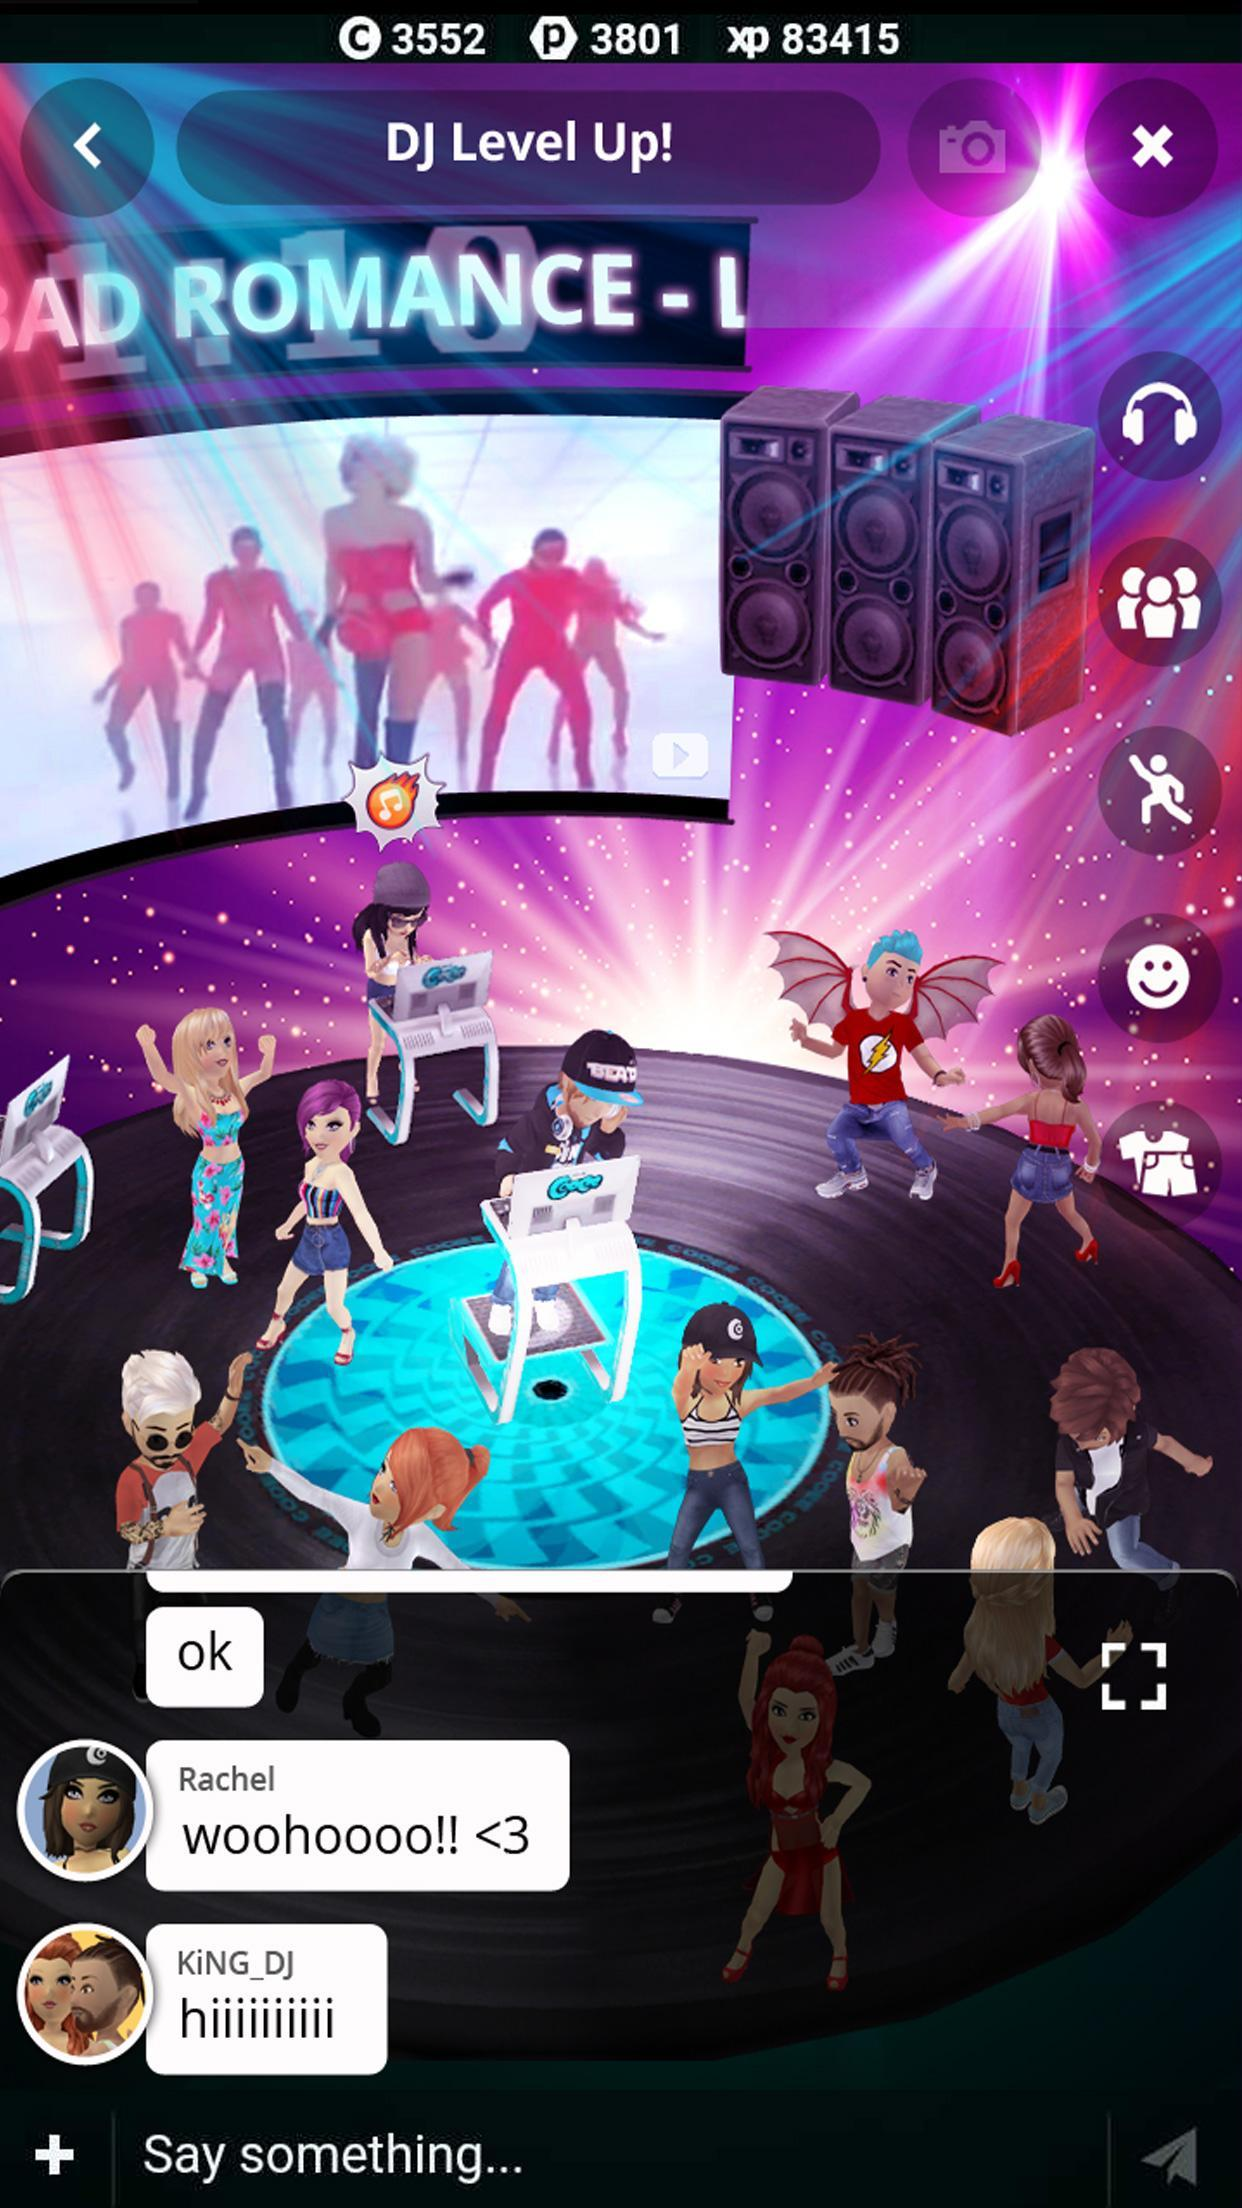 Club Cooee for Android - APK Download